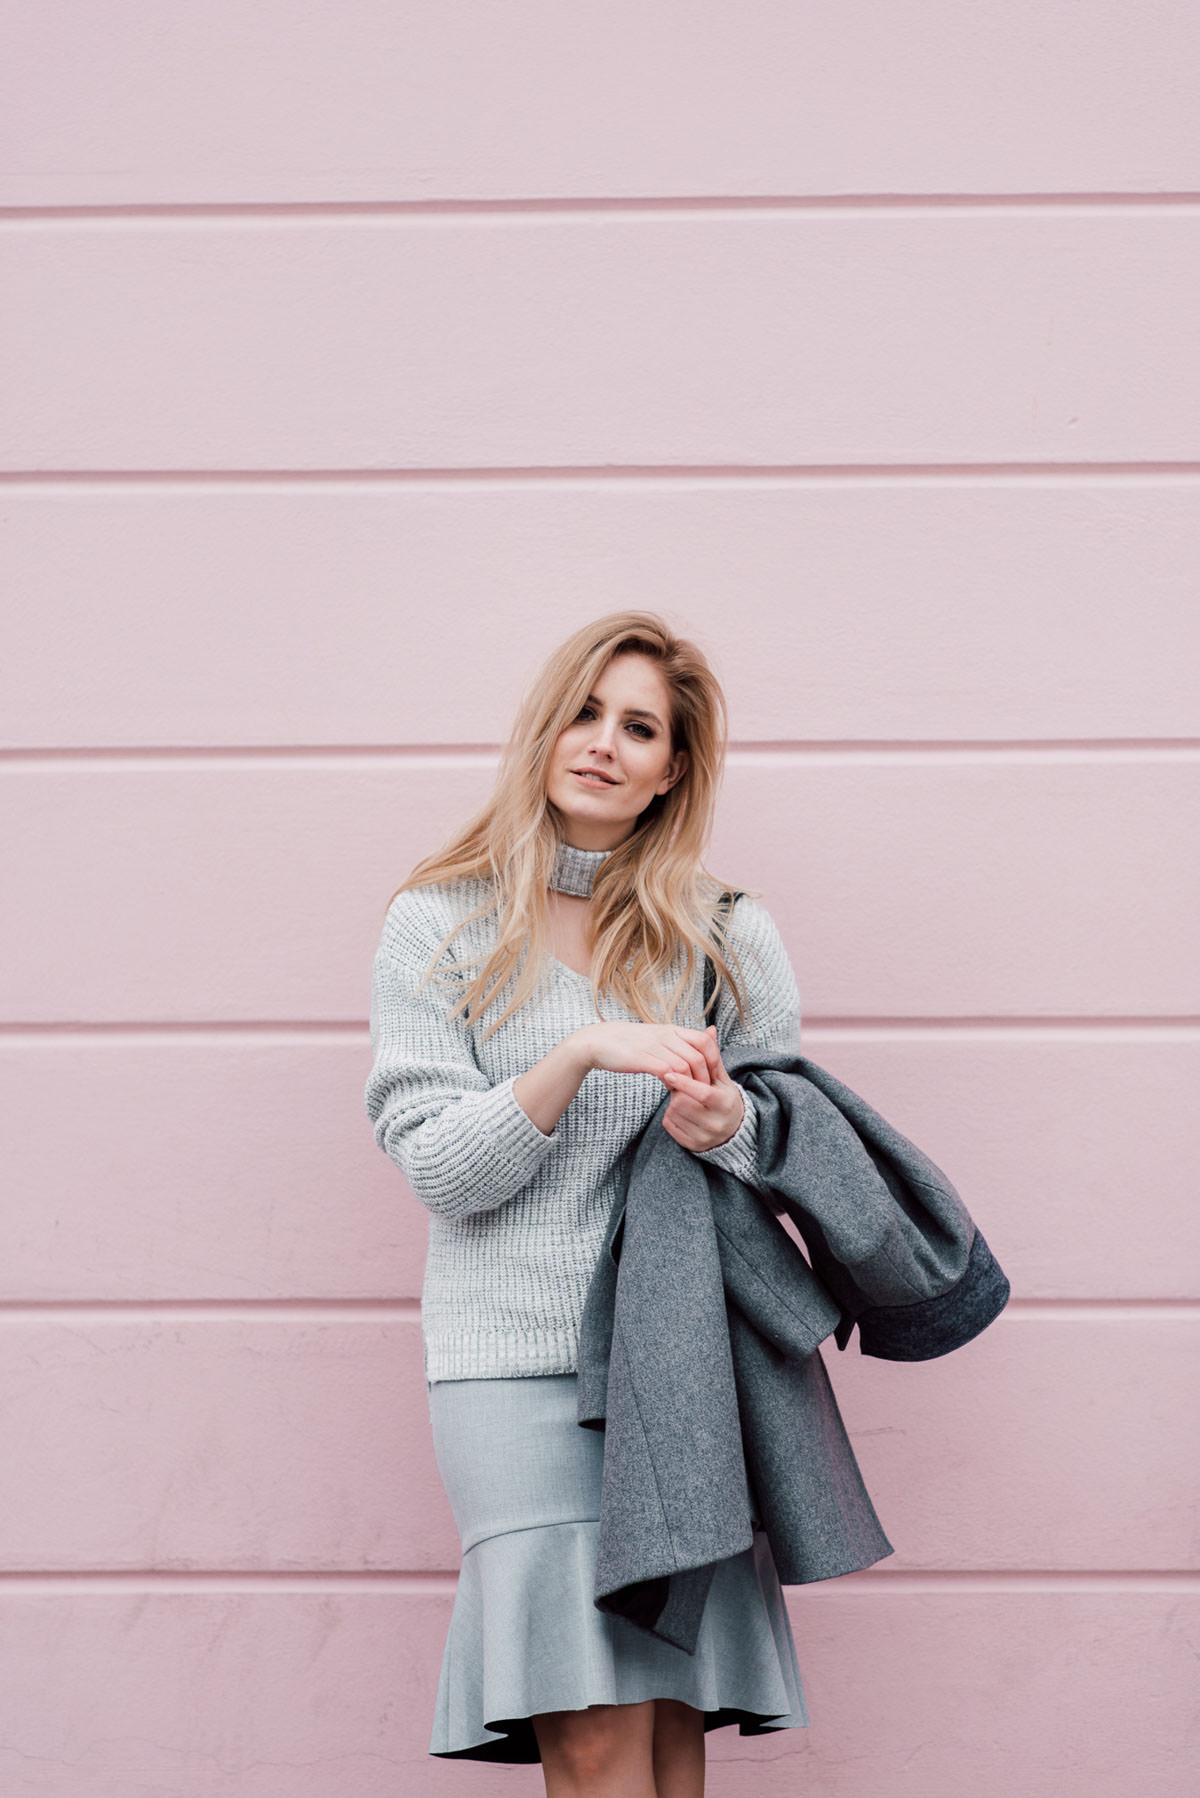 pink wall outfit